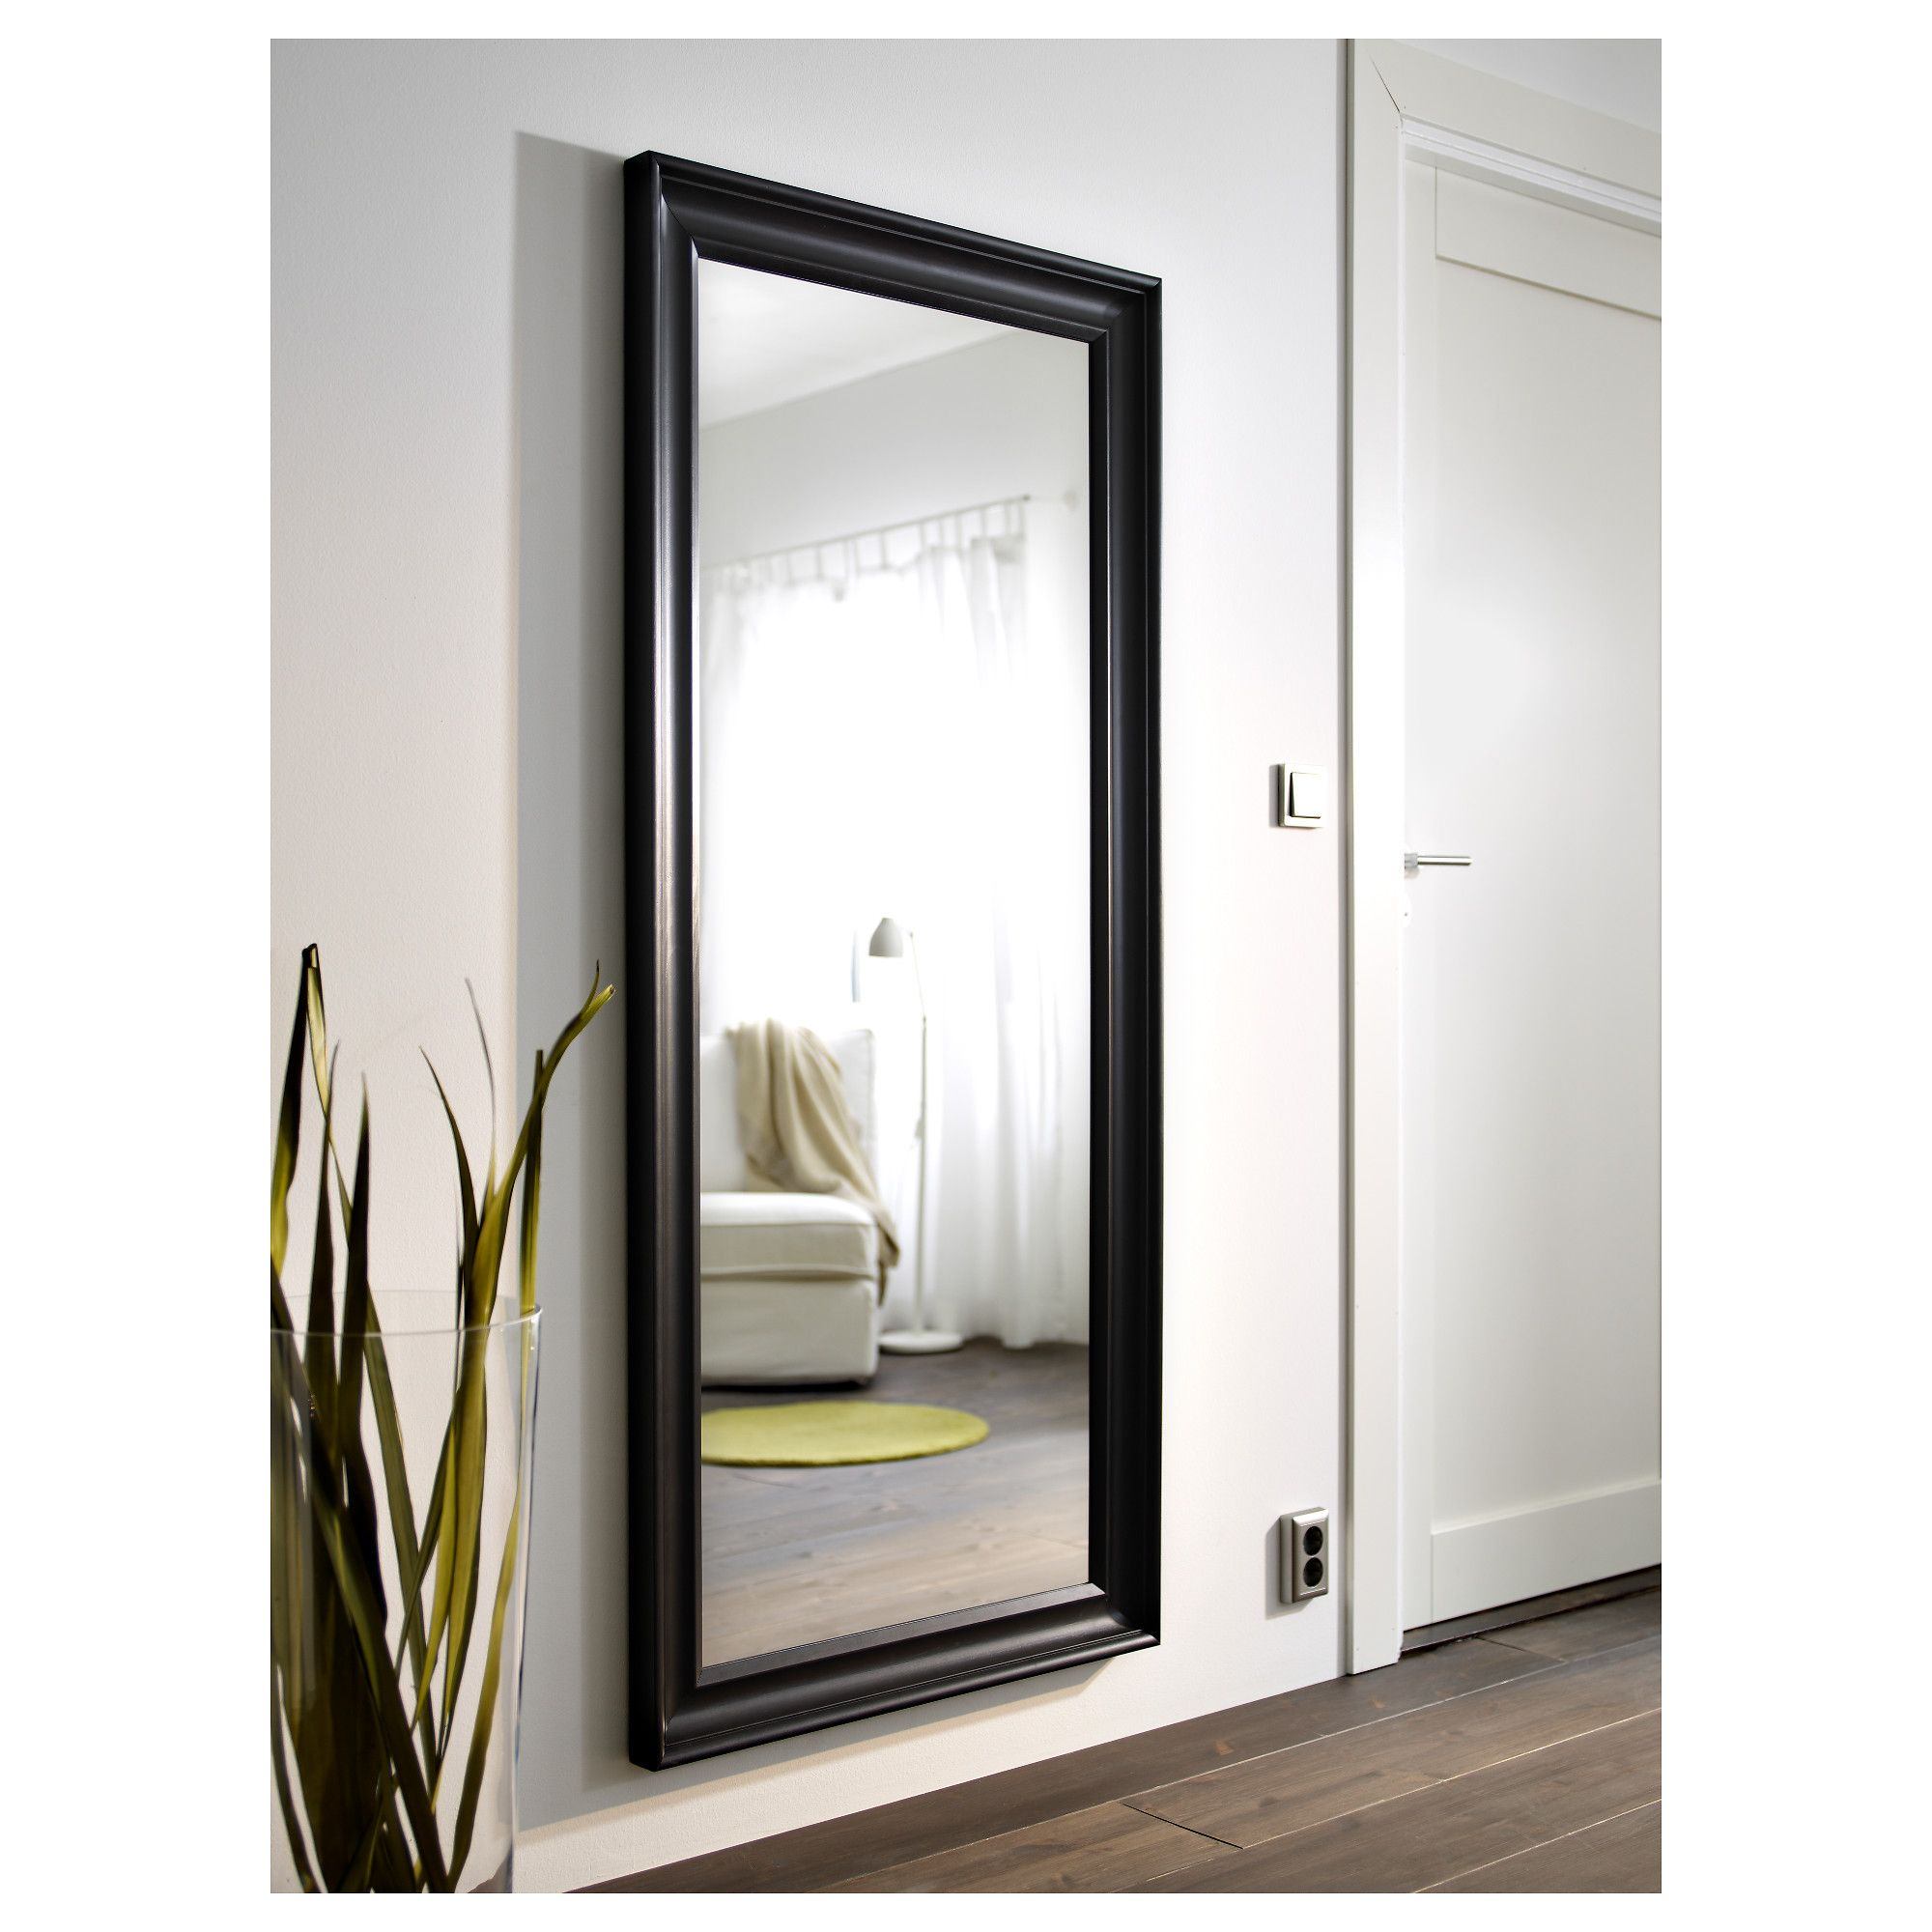 Ikea Hemnes Spiegel : ikea hemnes mirror black brown in 2019 mirrors ~ Watch28wear.com Haus und Dekorationen